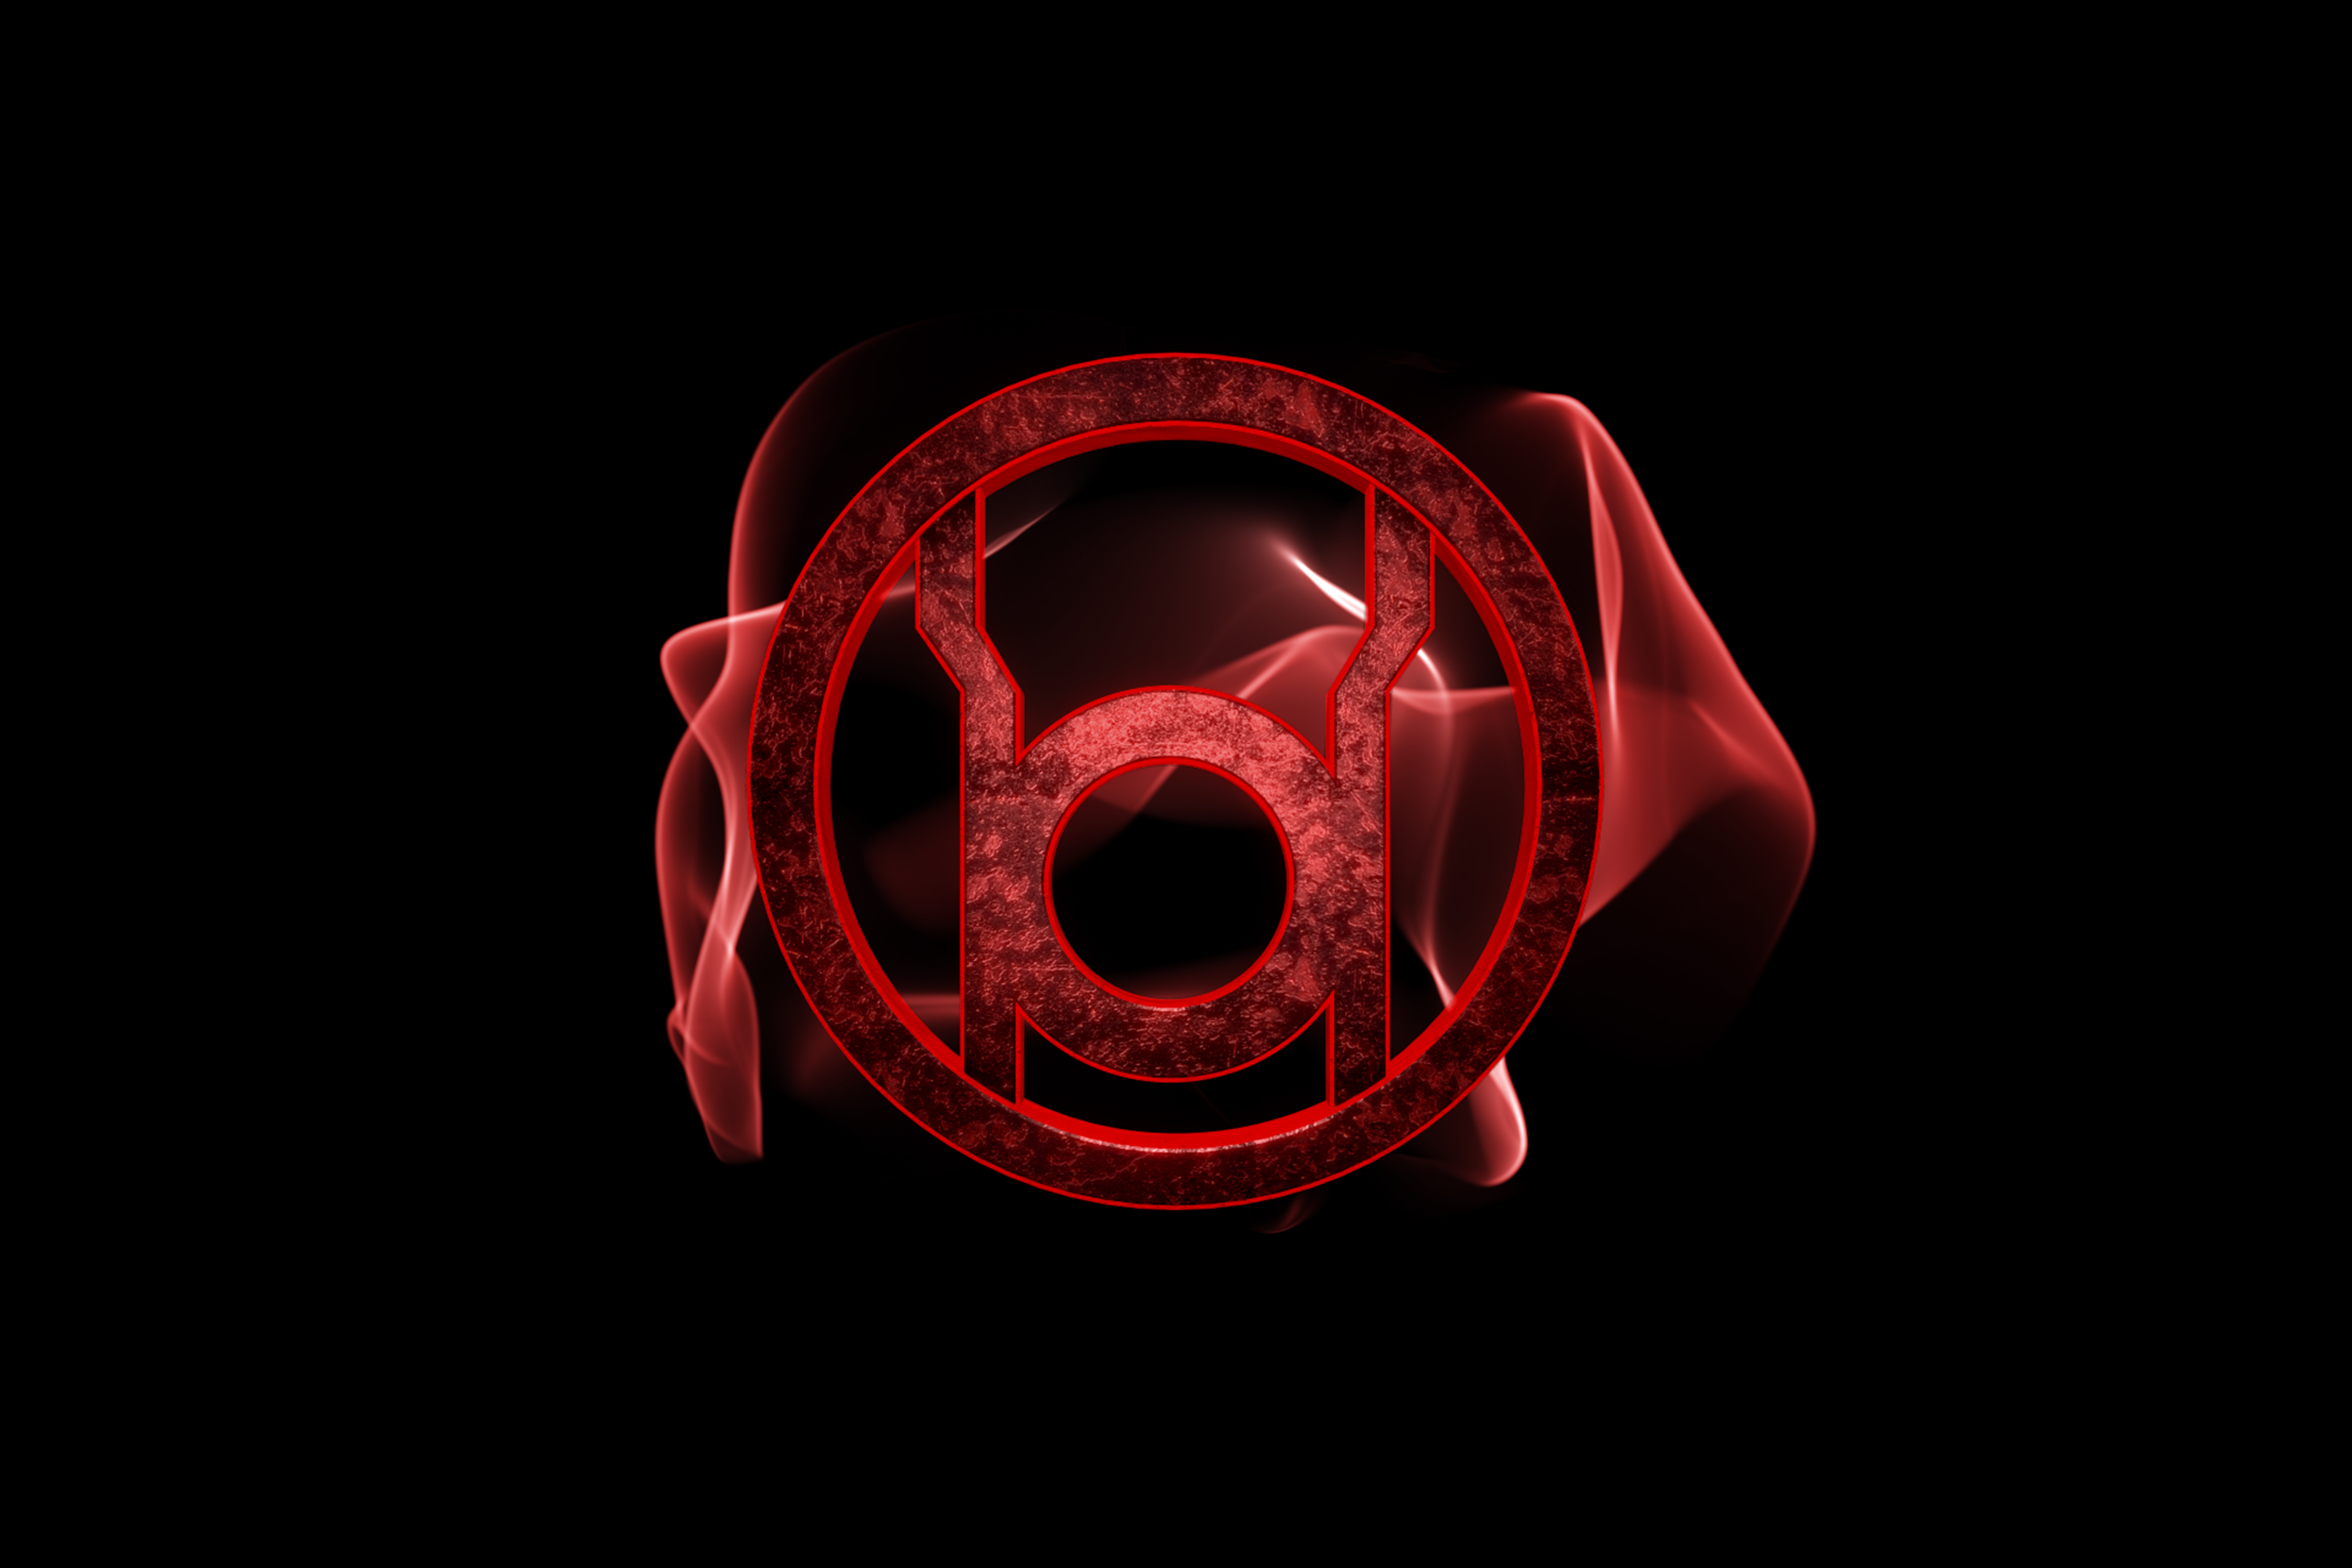 Red lantern corps symbol wallpaper - photo#19